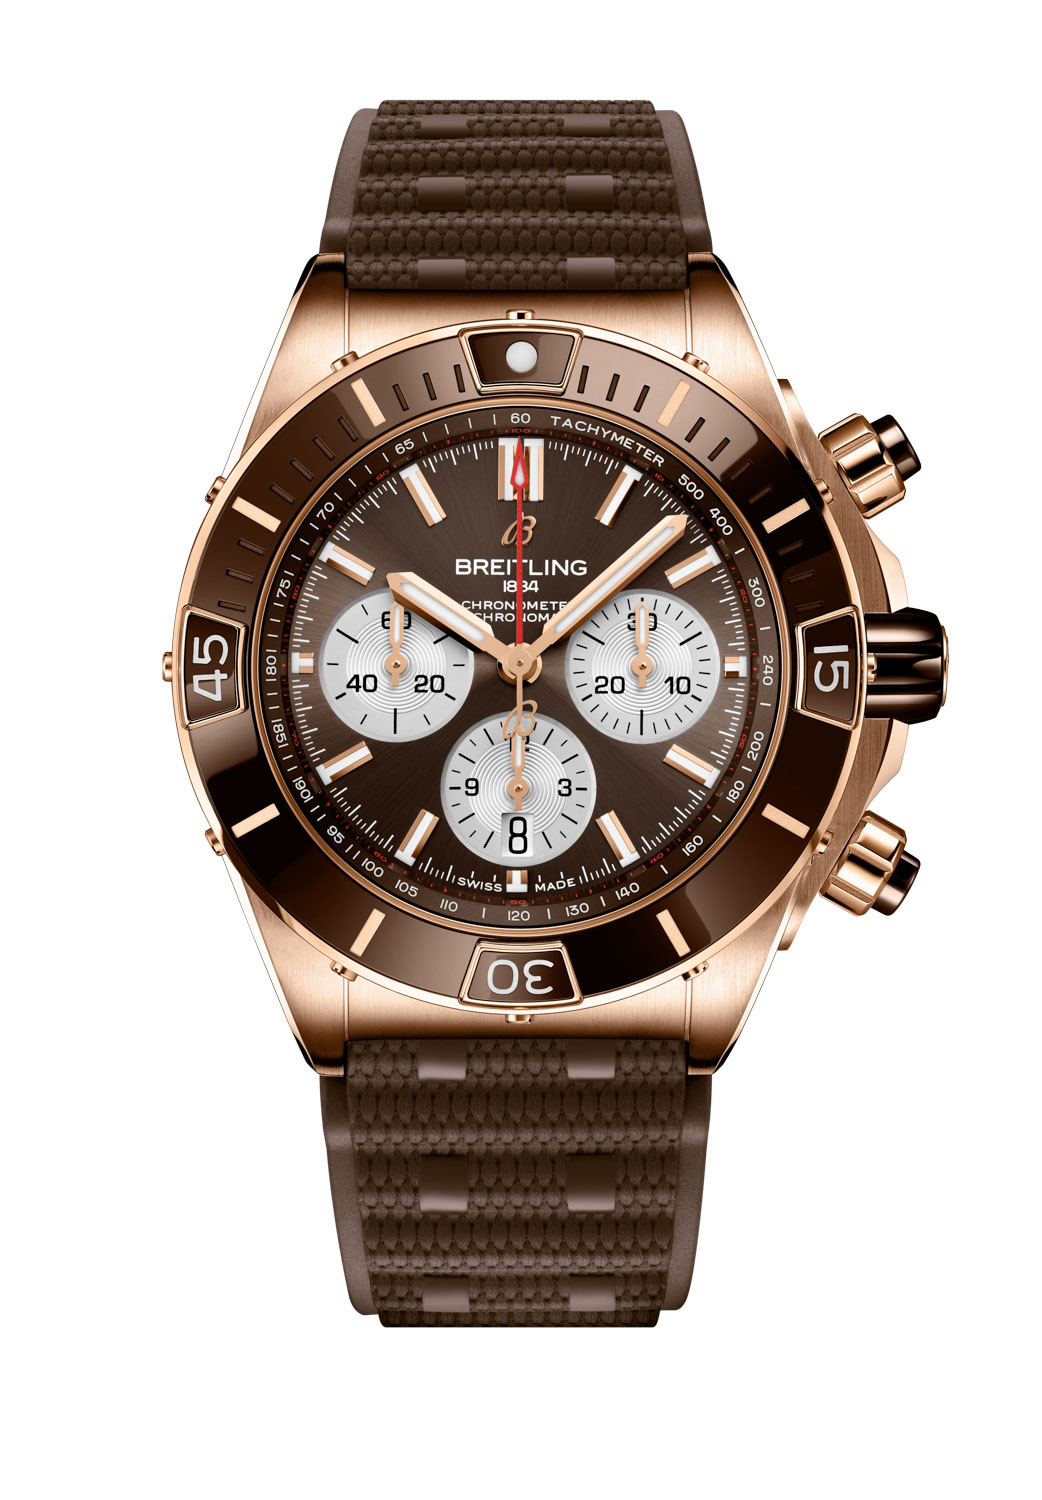 The Super Chronomat B01 44 in 18 k red gold, with brown dial and ceramic bezel insert fitted on a brown Rouleaux-inspired rubber strap with folding clasp